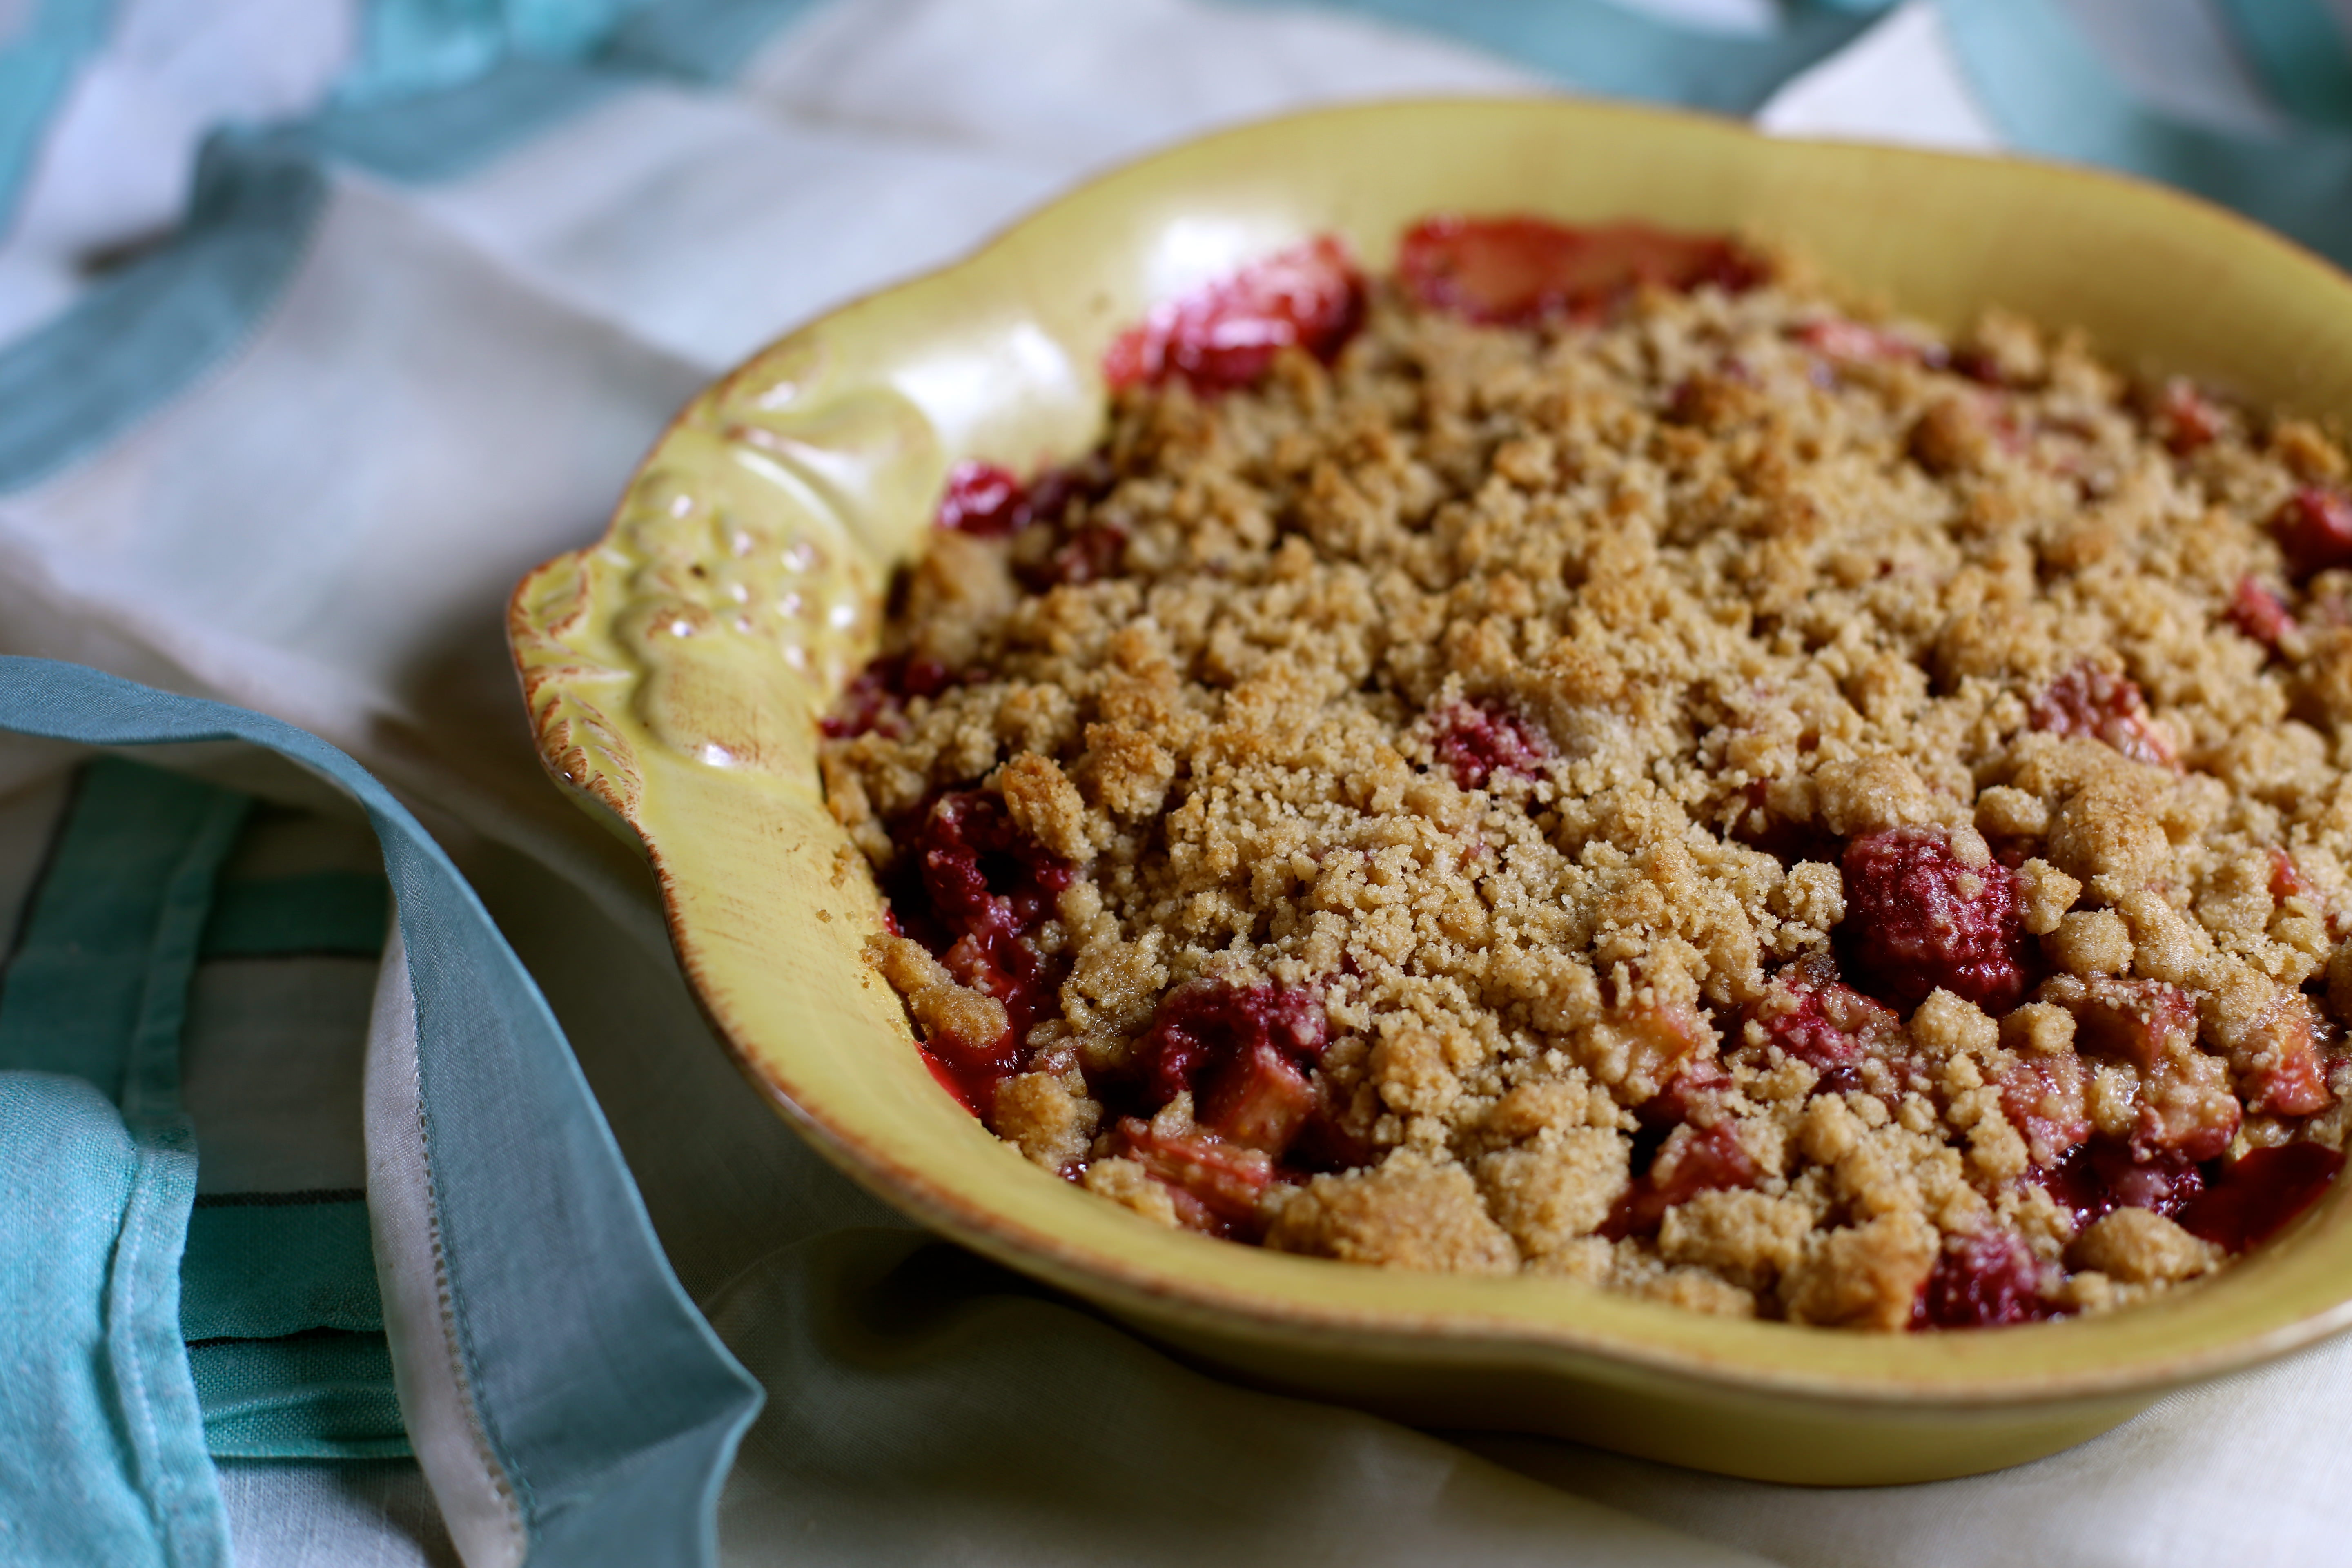 A yellow baking dish of Raspberry Rhubarb Crisp on a blue and white table cloth